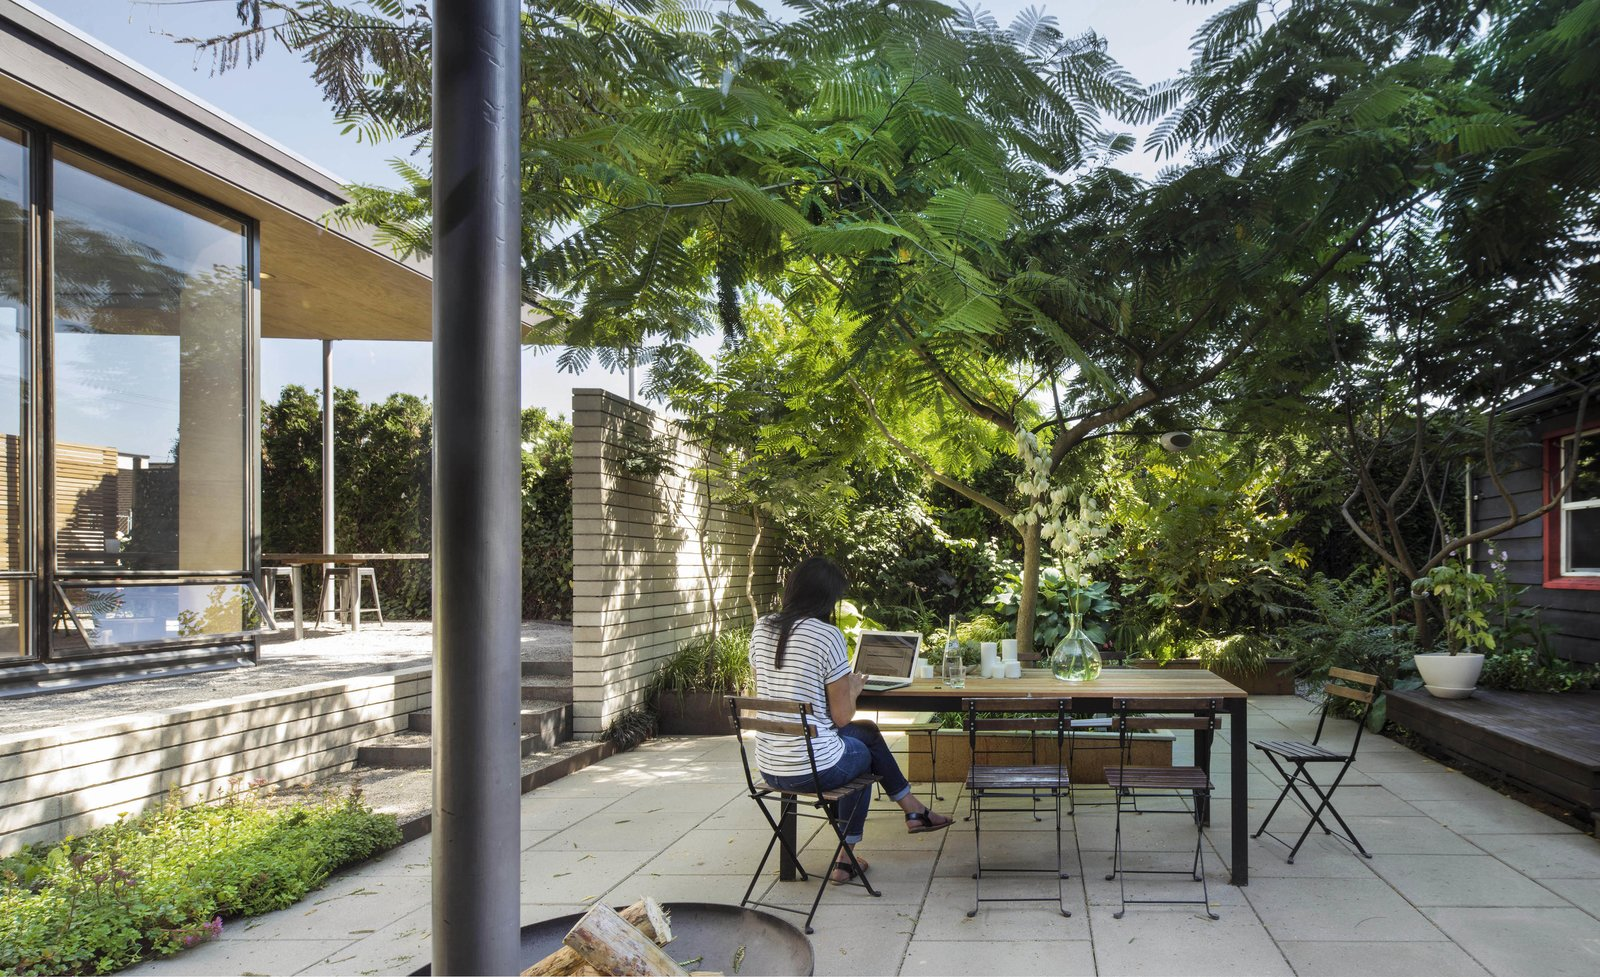 """Outdoor The courtyard is sunken because of the existing grade. The Albezia shade tree was planted when the outdoor area was still scrap yard, an """"act of hope and faith in the future,"""" says Wittman.  Search """"landscapes--trees"""" from A Blissful Retreat Replaces a Scrap-Filled Yard in Seattle"""